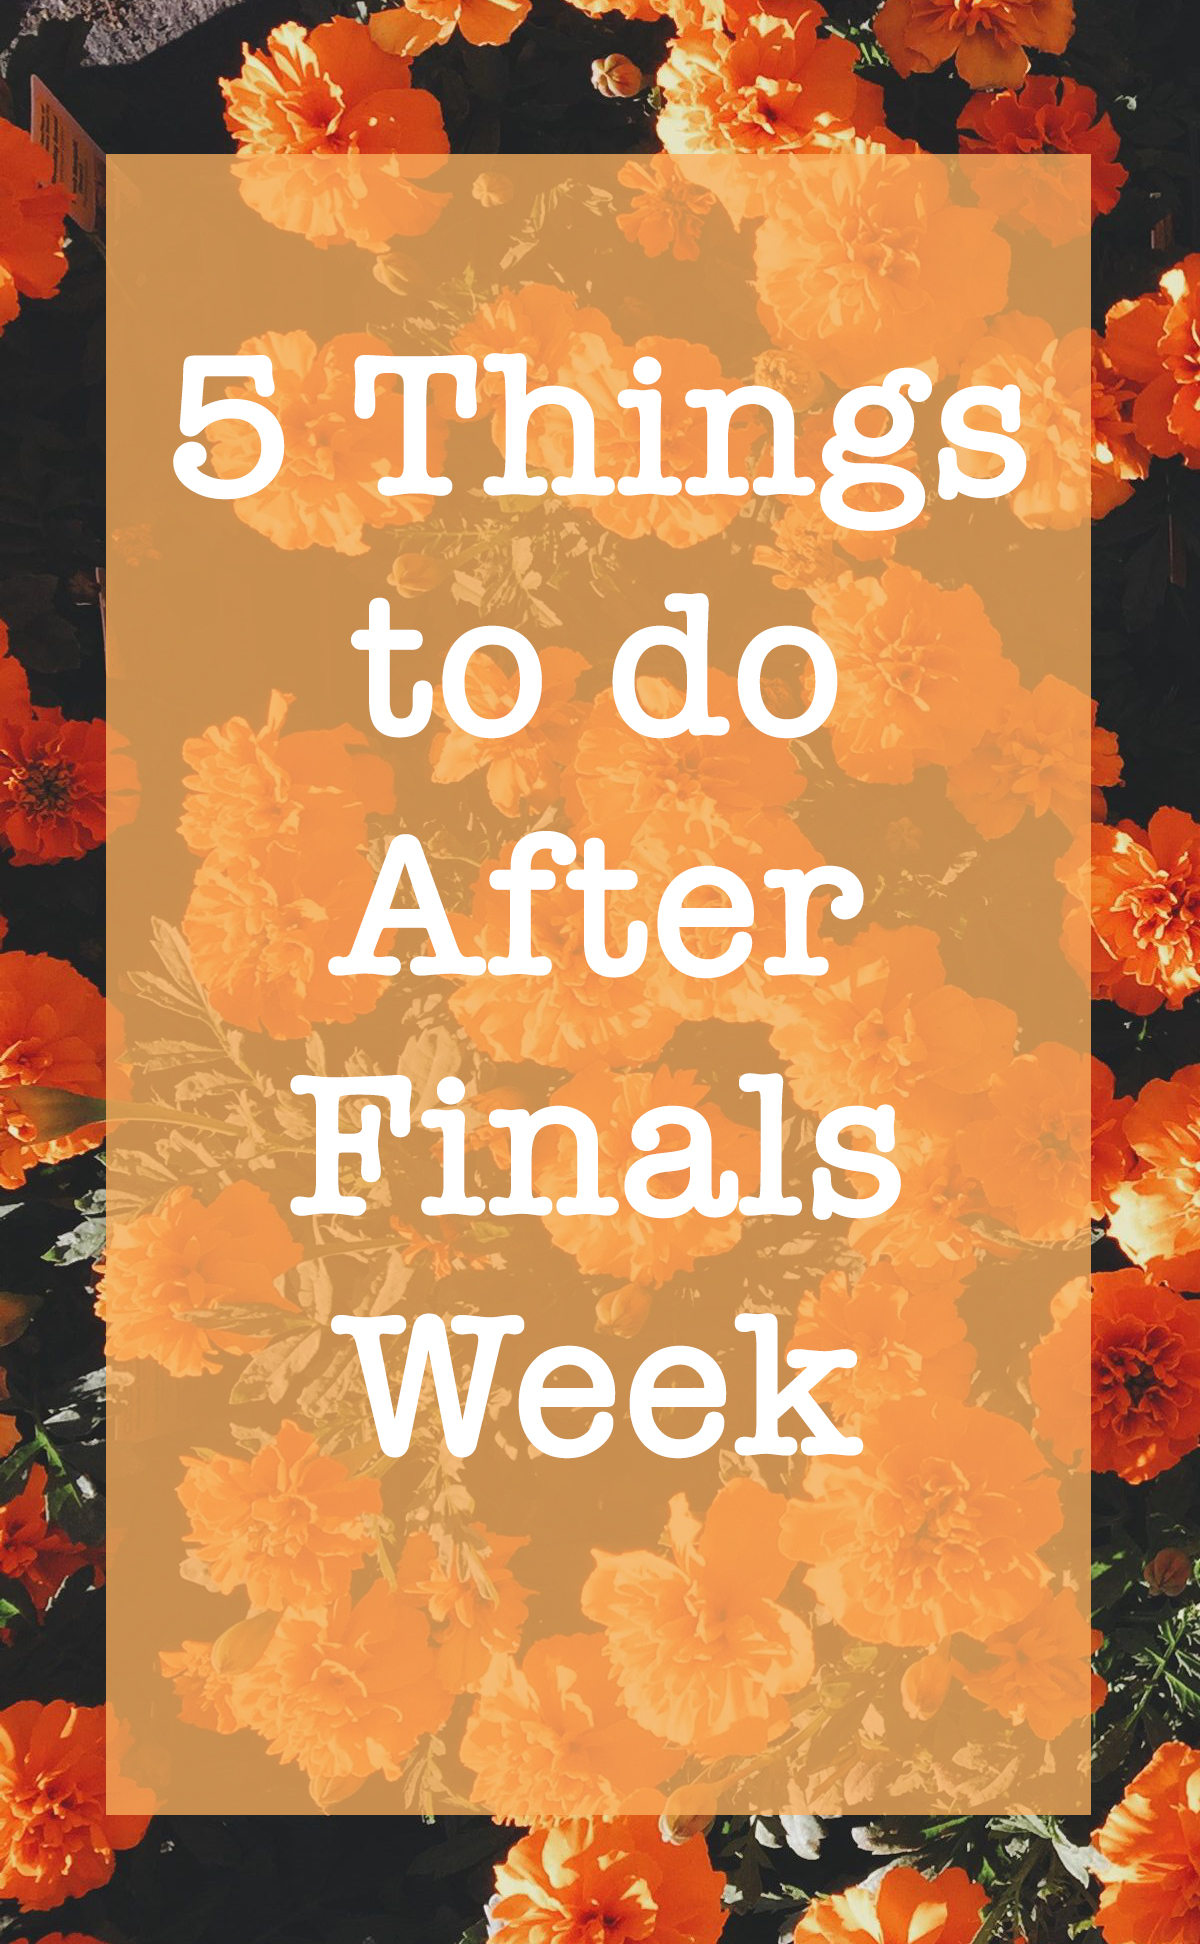 5 Thing To Do After Finals Week